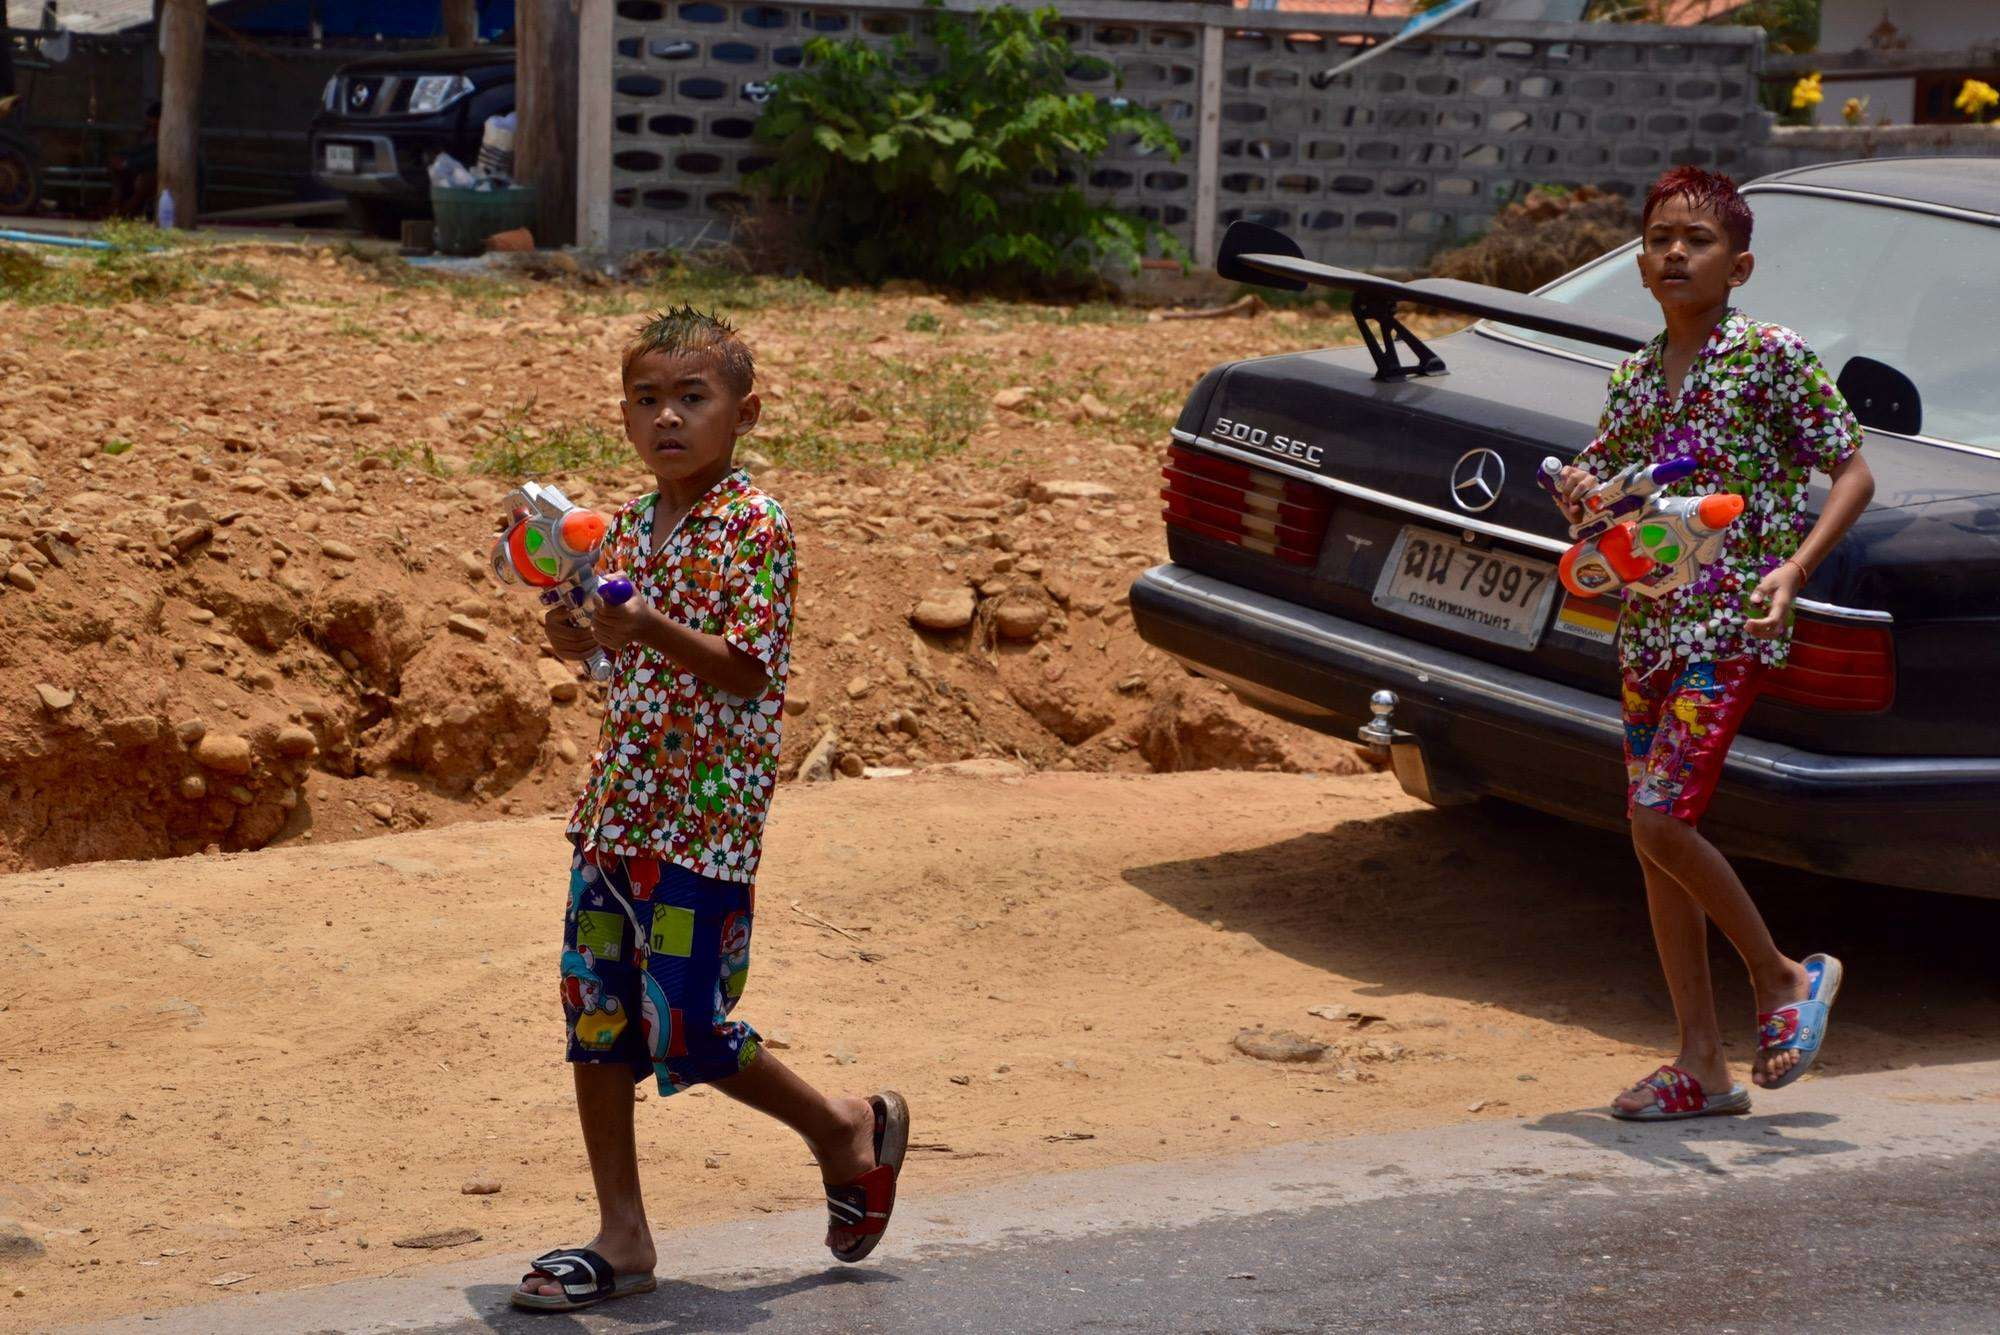 This little kids are 100% badass. They should have been walking in slow motion with an epic soundtrack behind them.